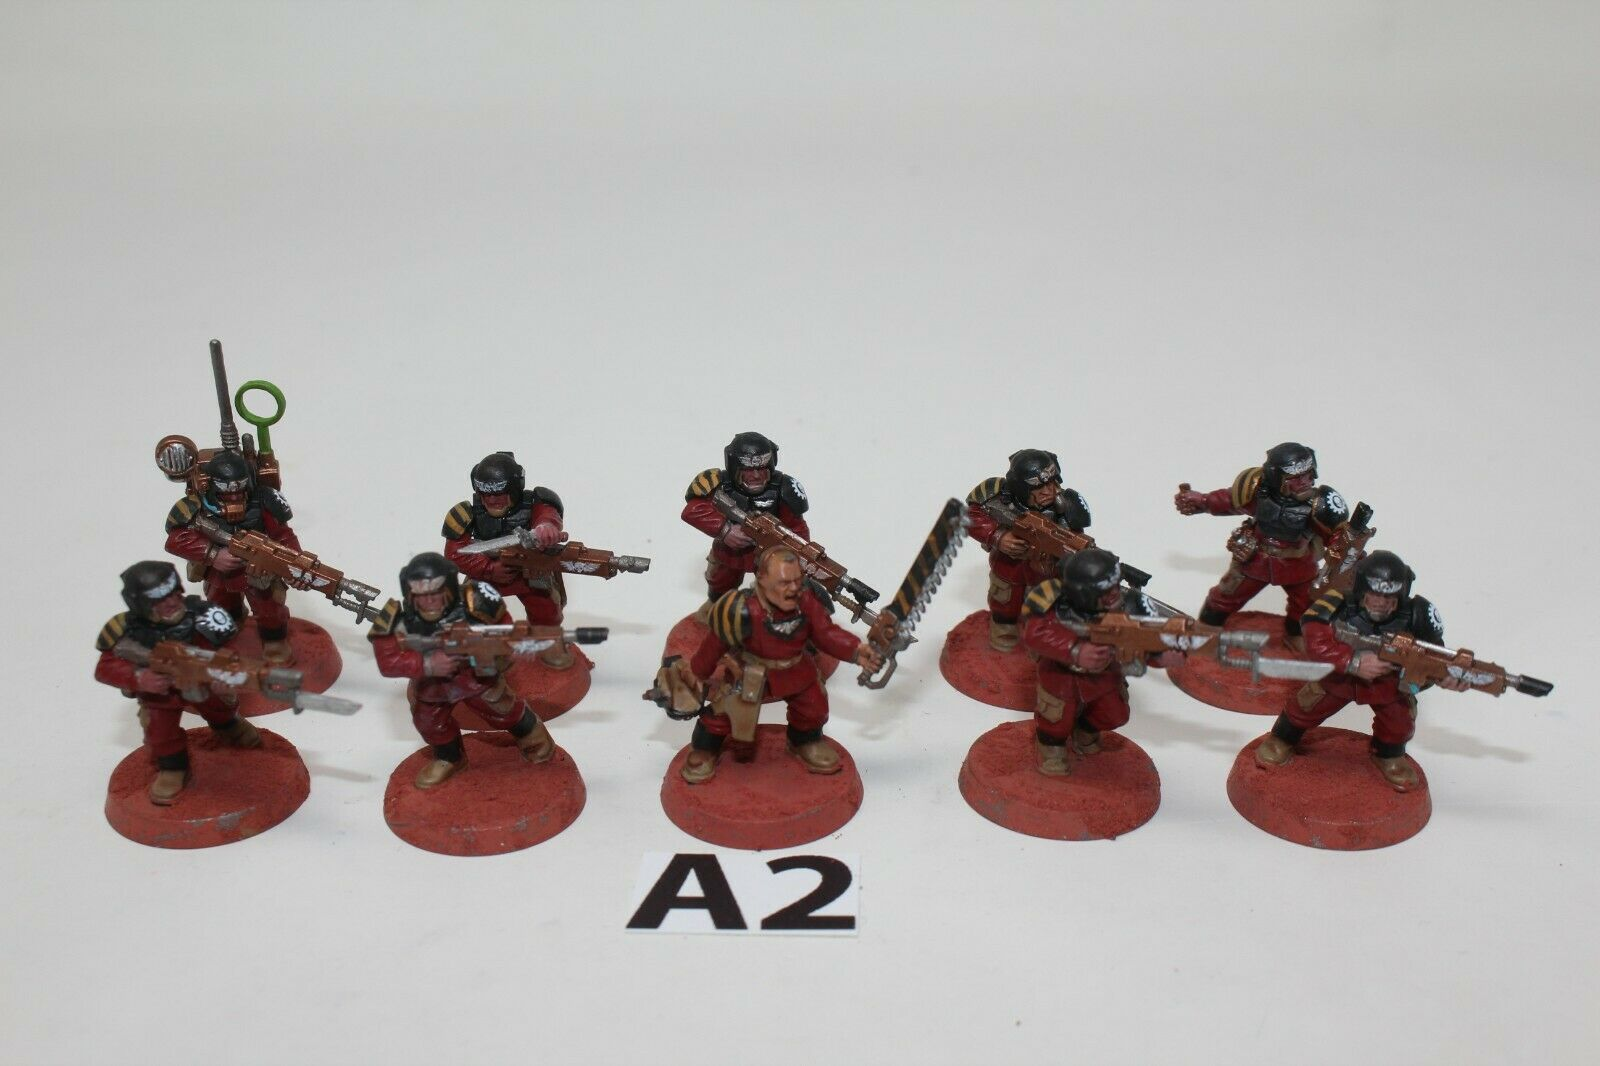 Warhammer Guardia Imperial cadain Shock Troopers-A2